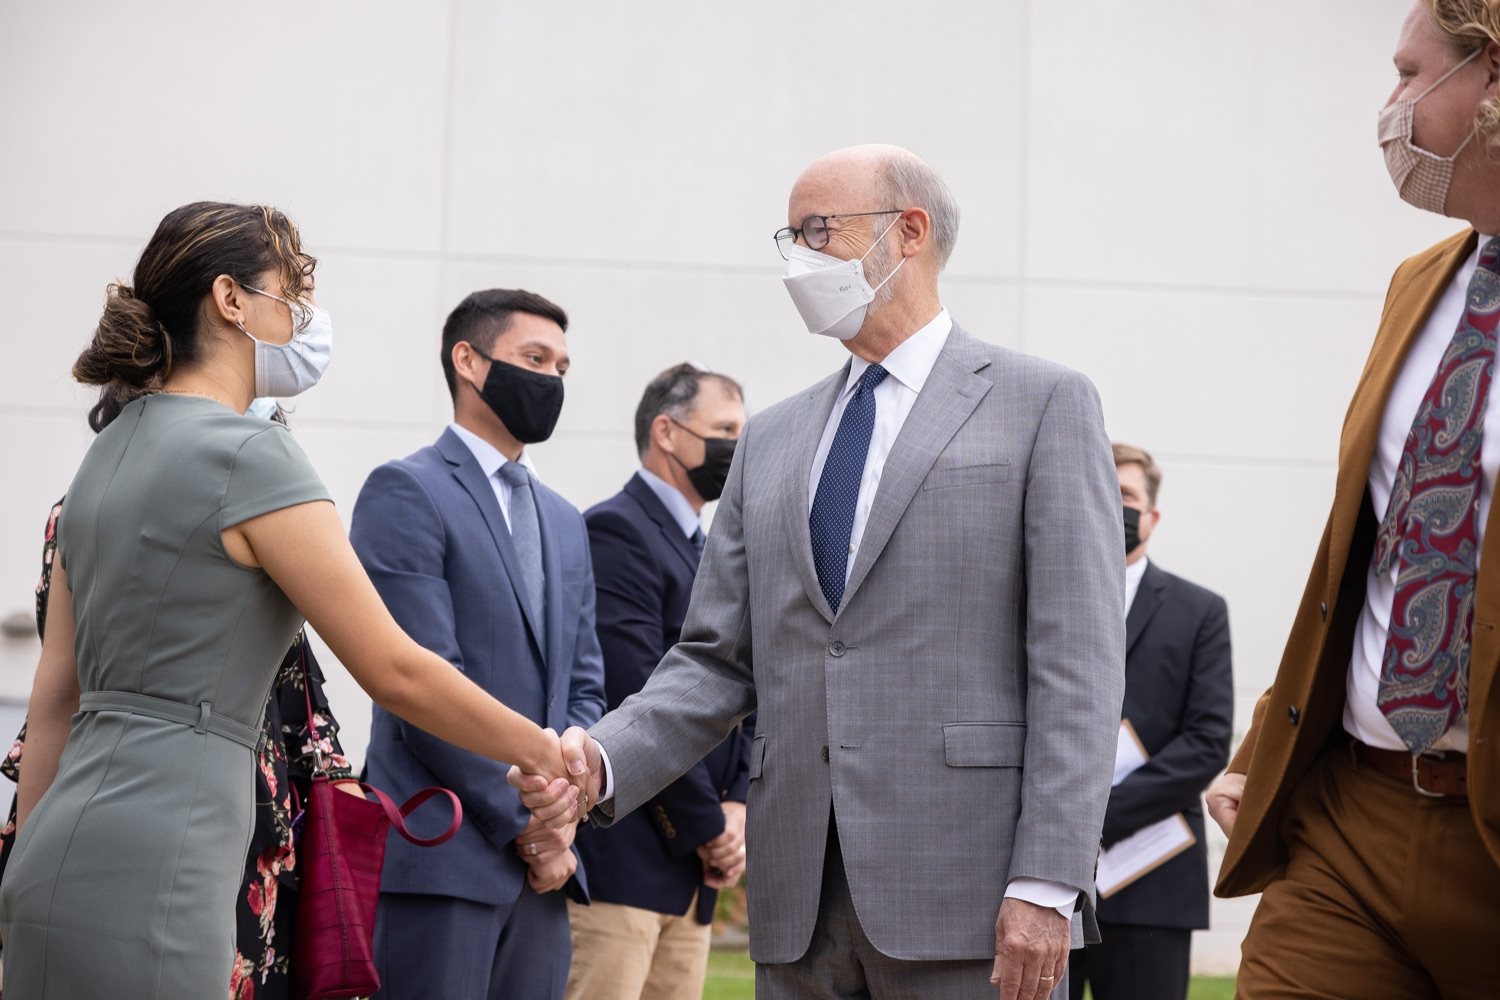 """<a href=""""https://filesource.wostreaming.net/commonwealthofpa/photo/20138_gov_BioTechniqueRibbon_dz_006.JPG"""" target=""""_blank"""">⇣Download Photo<br></a>Pennsylvania Governor Tom Wolf greeting BioTechnique employees.Governor Tom Wolf today joined BioTechnique CEO John Clapham, the Department of Community and Economic Developments (DCED) Governors Action Team (GAT), York County Economic Alliance CEO Kevin Schreiber, and local officials at the ribbon cutting ceremony for BioTechniques new pharmaceutical manufacturing facility in York County.   OCTOBER 12, 2021 - YORK, PA"""